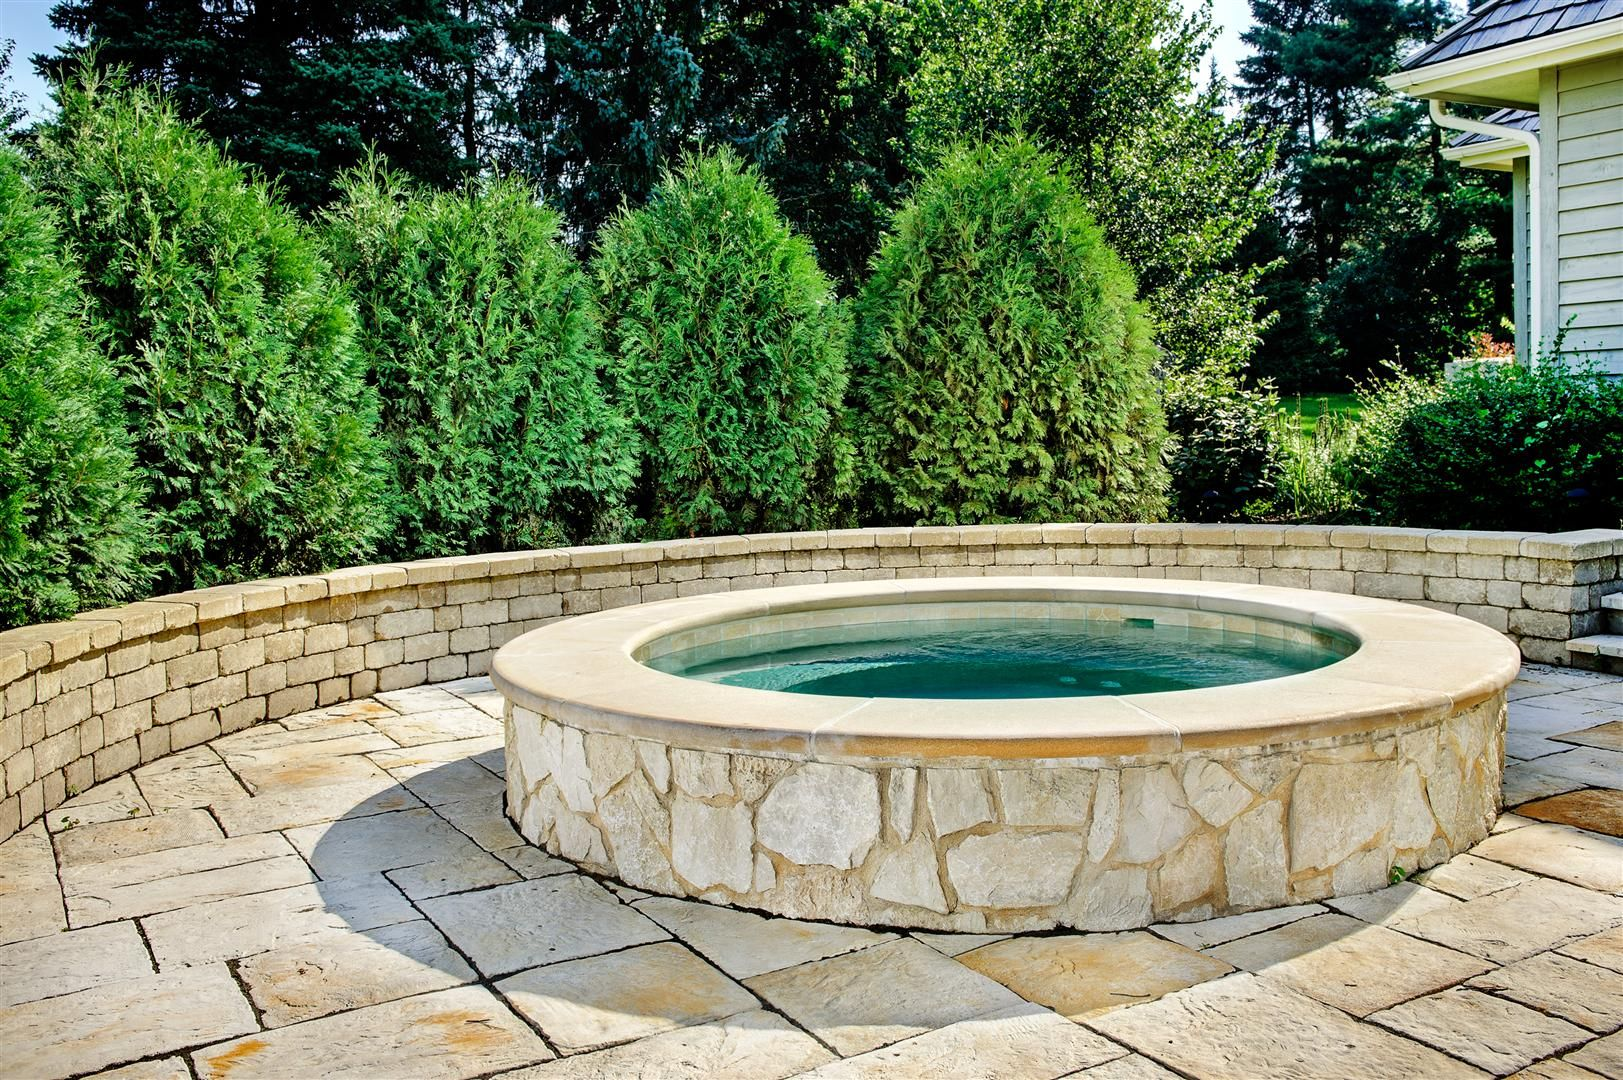 Hot Tub Landscaping For The Beginner On A Budget Hot Tub Landscaping Hot Tub Backyard Inground Hot Tub